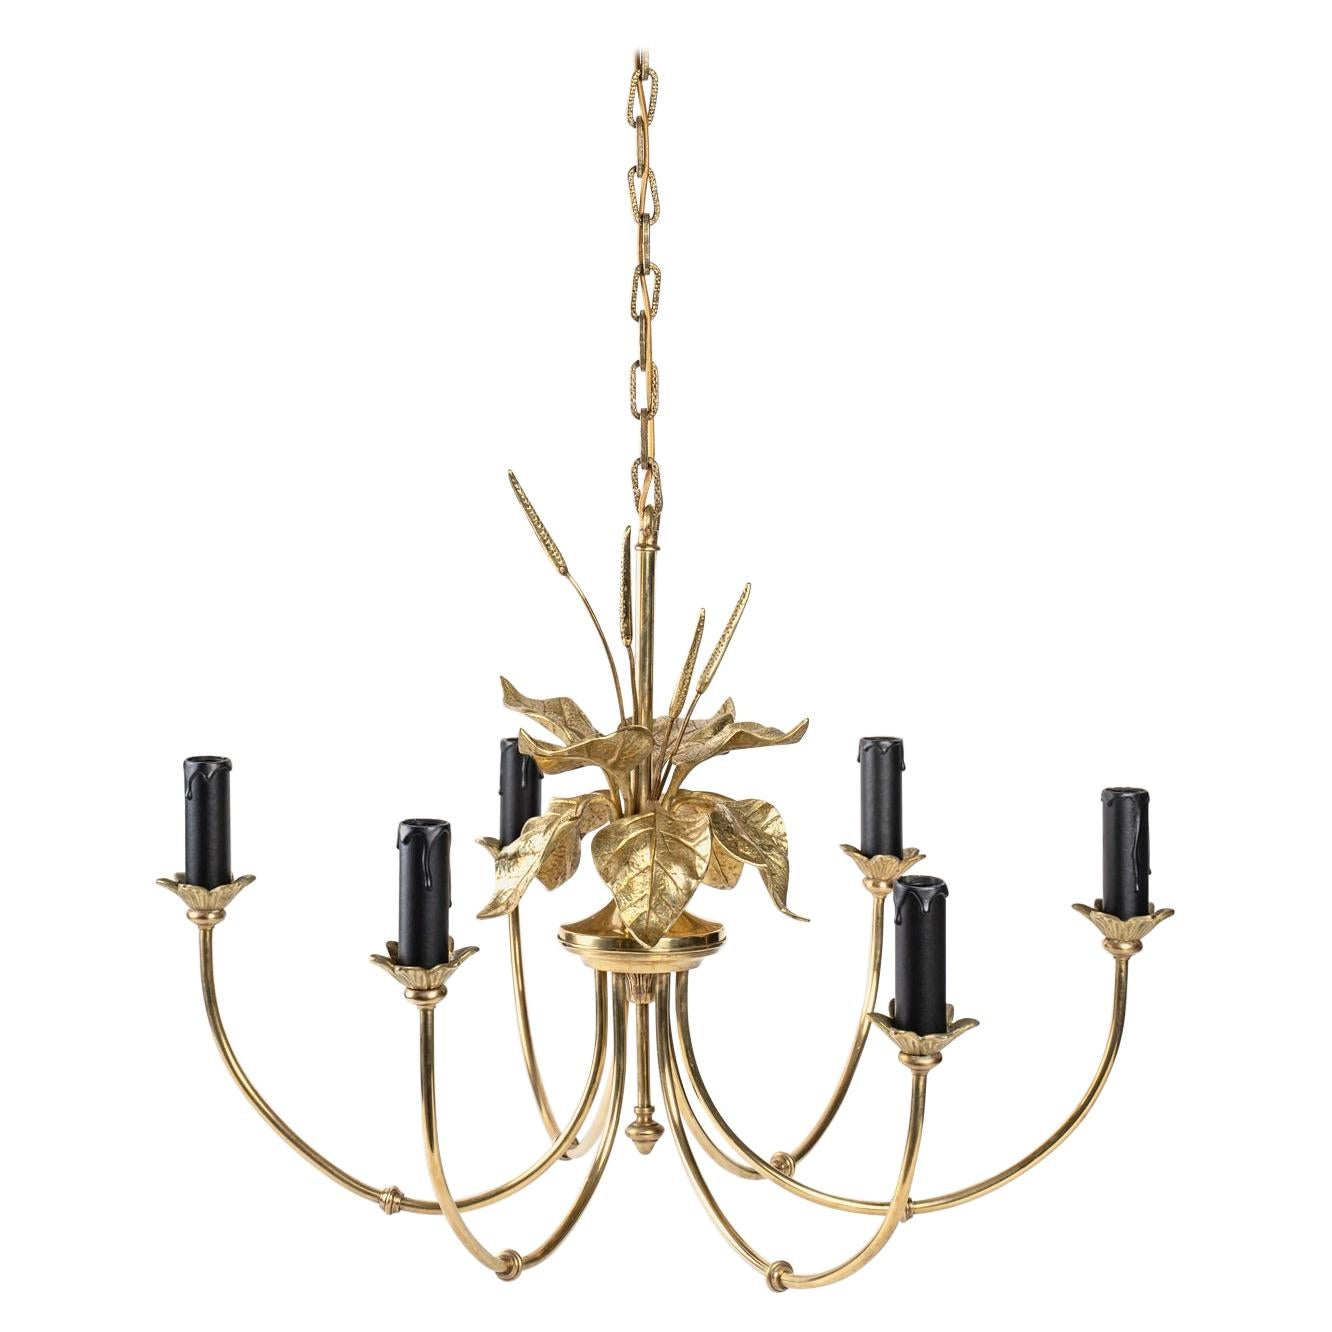 1970 Maison Charles Chandelier with Floral Decoration in Bronze